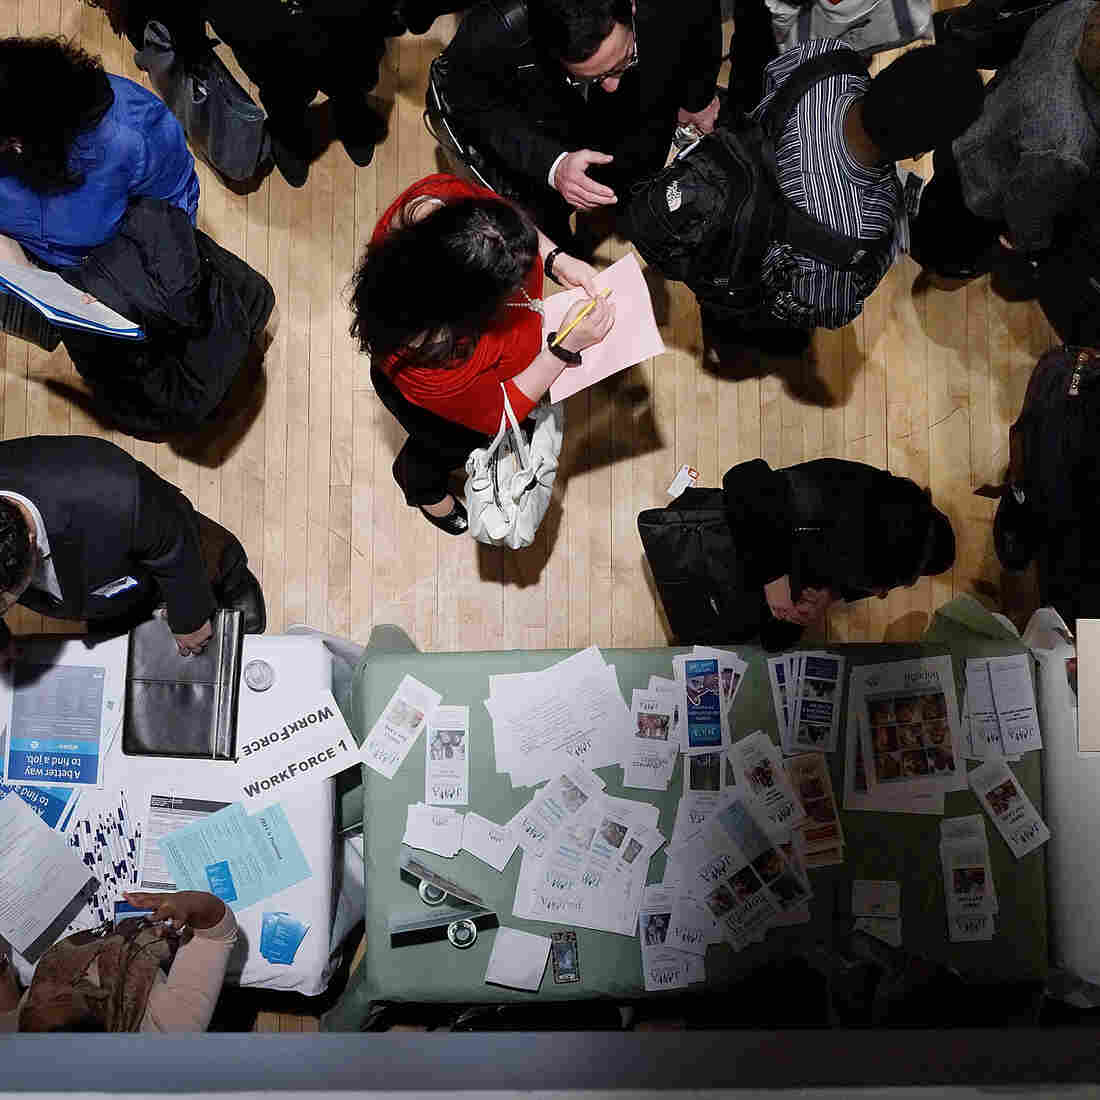 The scene at a job fair in Manhattan earlier this month.